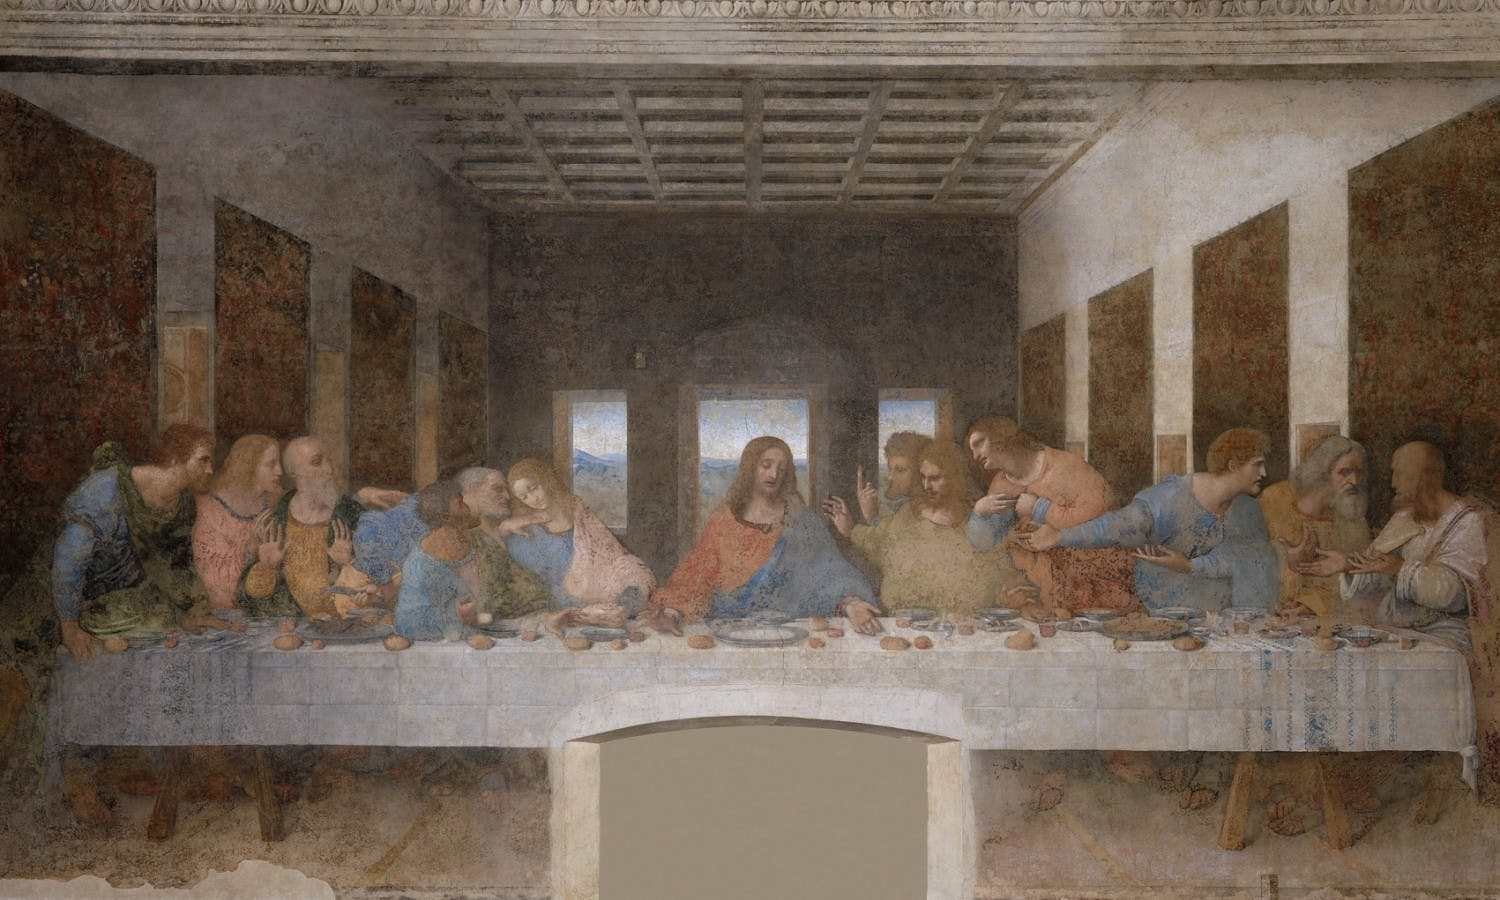 The changing face of Jesus. Good idea or bad? Da-vinci-s-last-supper-skip-the-line-tickets-and-guided-tour_header-9730